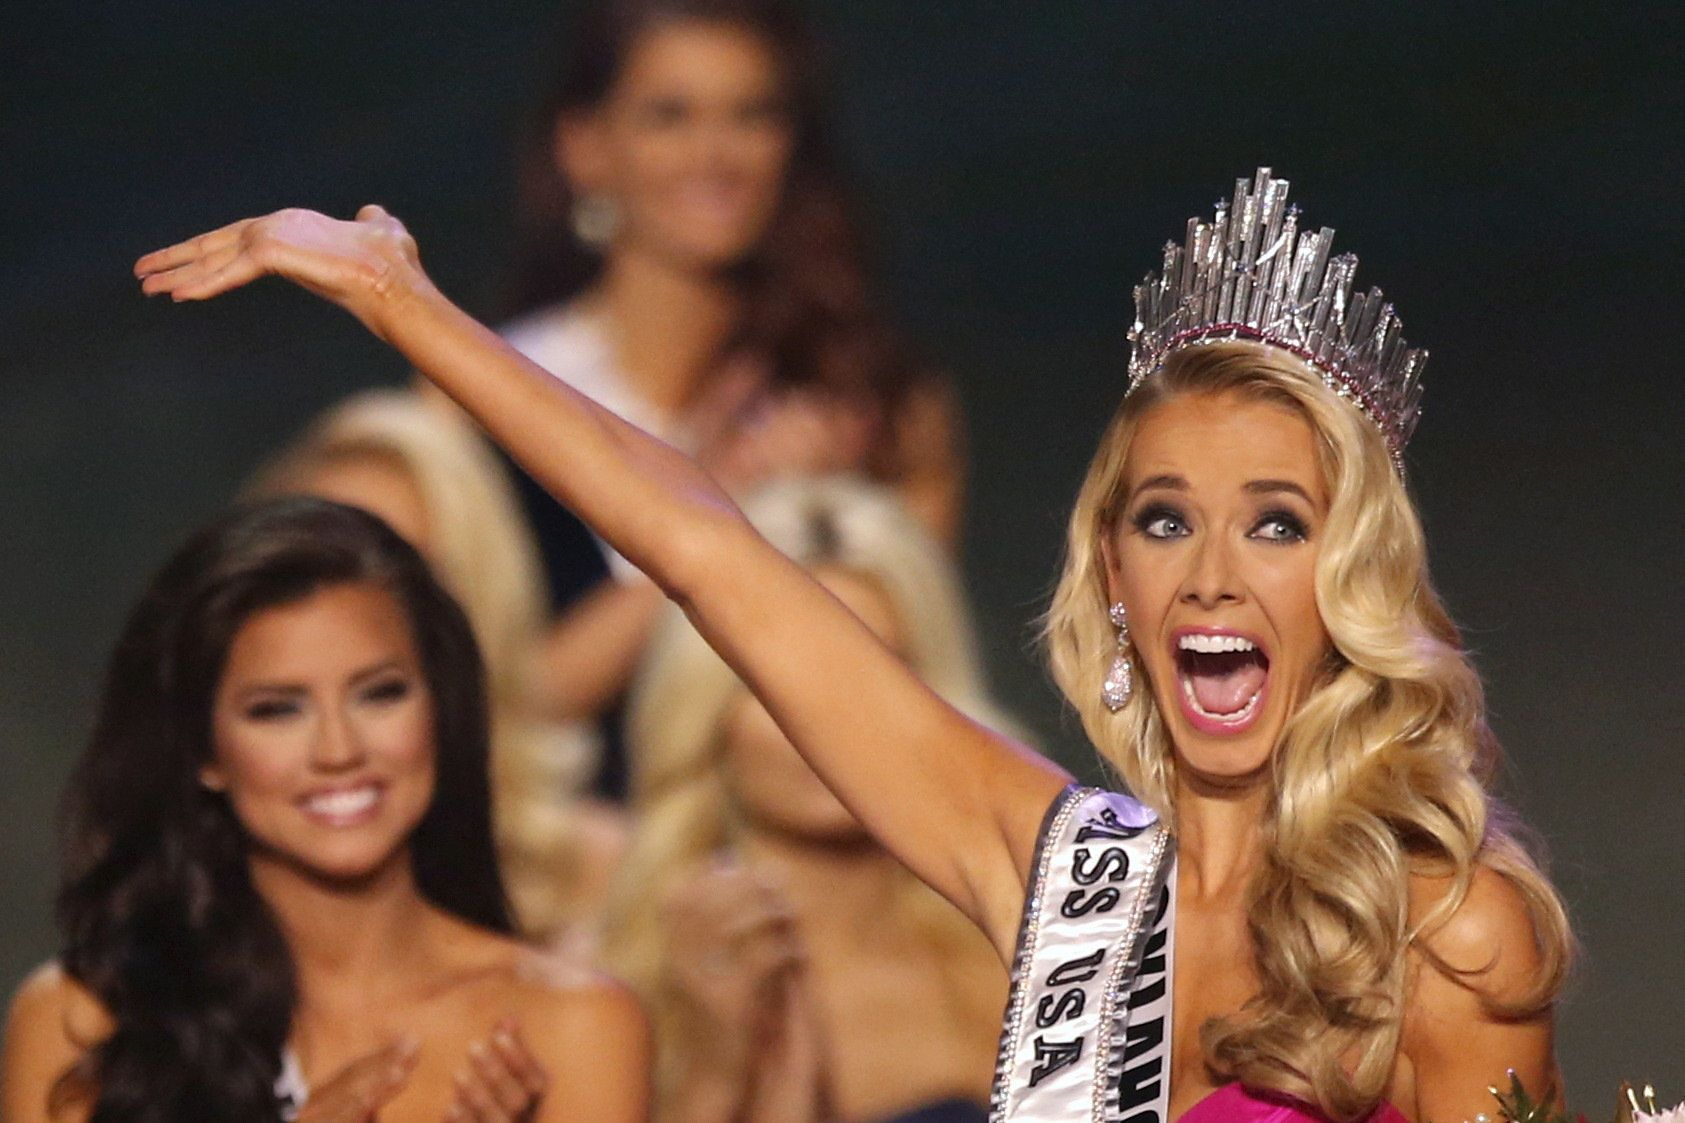 Newly crowned Miss USA Olivia Jordan of Oklahoma reacts after winning the 2015 Miss USA beauty pageant in Baton Rouge, Louisiana July 12, 2015. Fifty-one state title holders competed in the swimsuit, evening gown and interview categories for the title of Miss USA 2015.  REUTERS/Adrees Latif ATTENTION EDITORS - FOR EDITORIAL USE ONLY. NOT FOR SALE FOR MARKETING OR ADVERTISING CAMPAIGNS